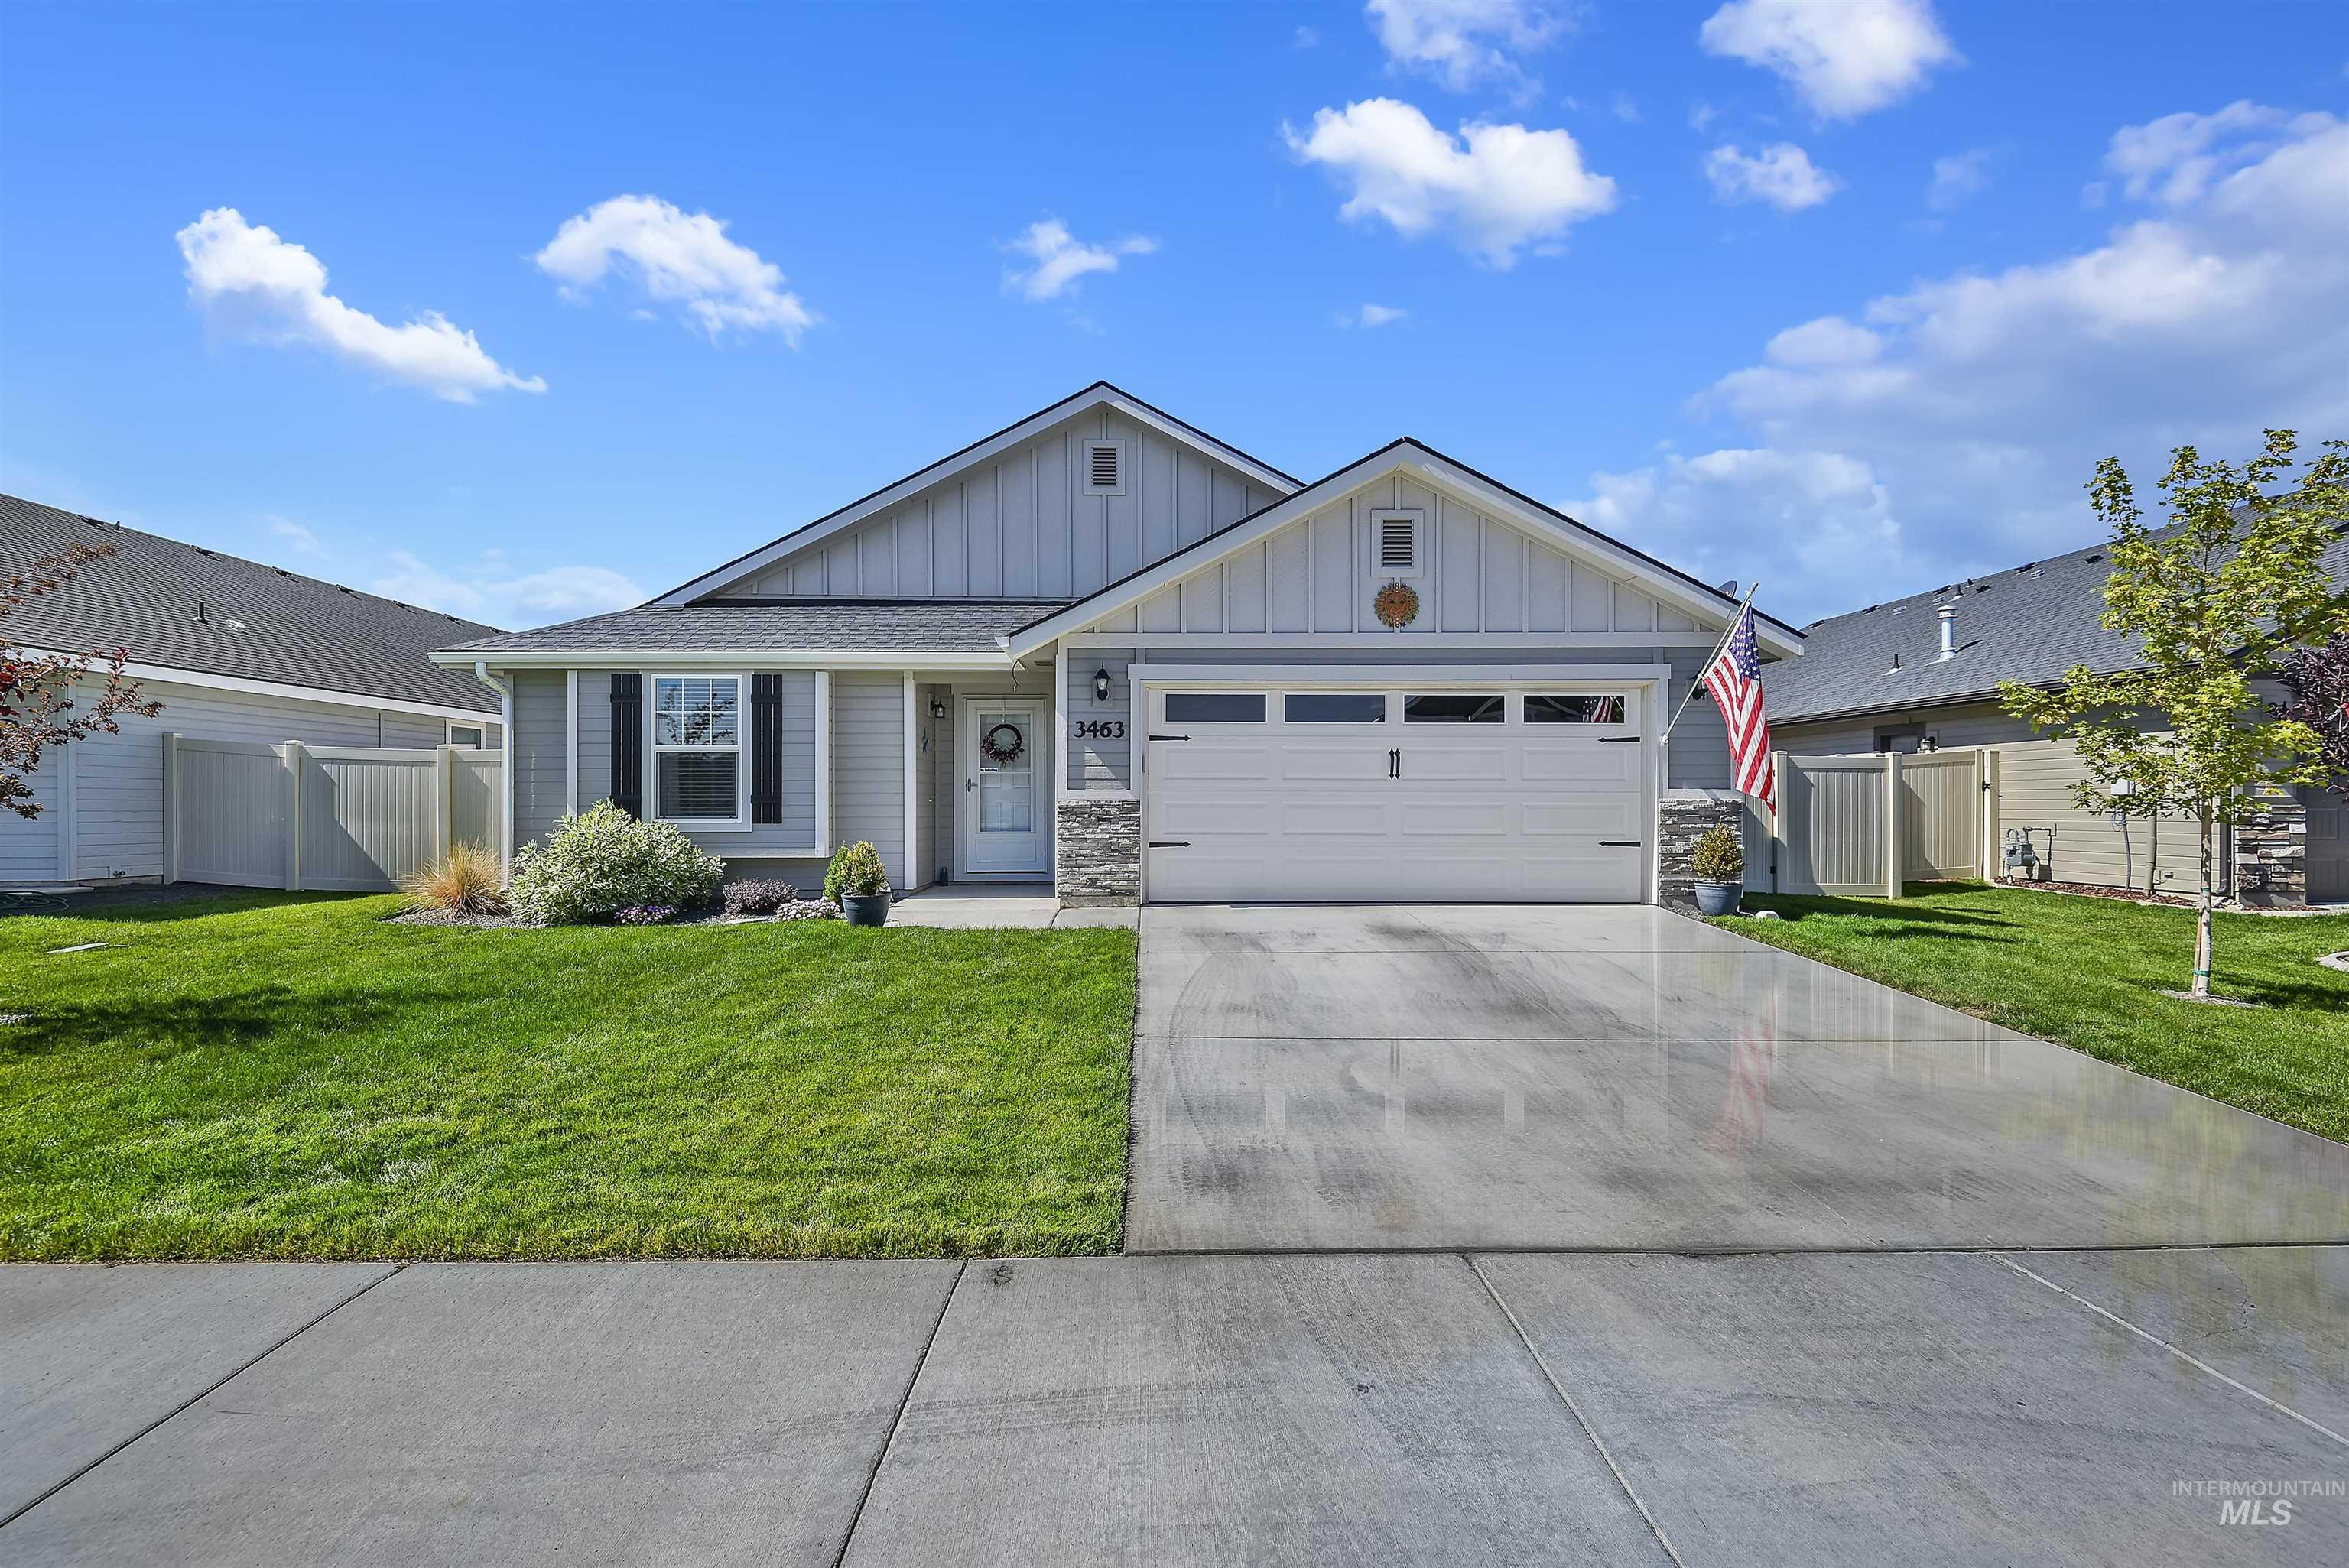 Photo of 3463 Cape Coral Ave. Nampa ID 83686